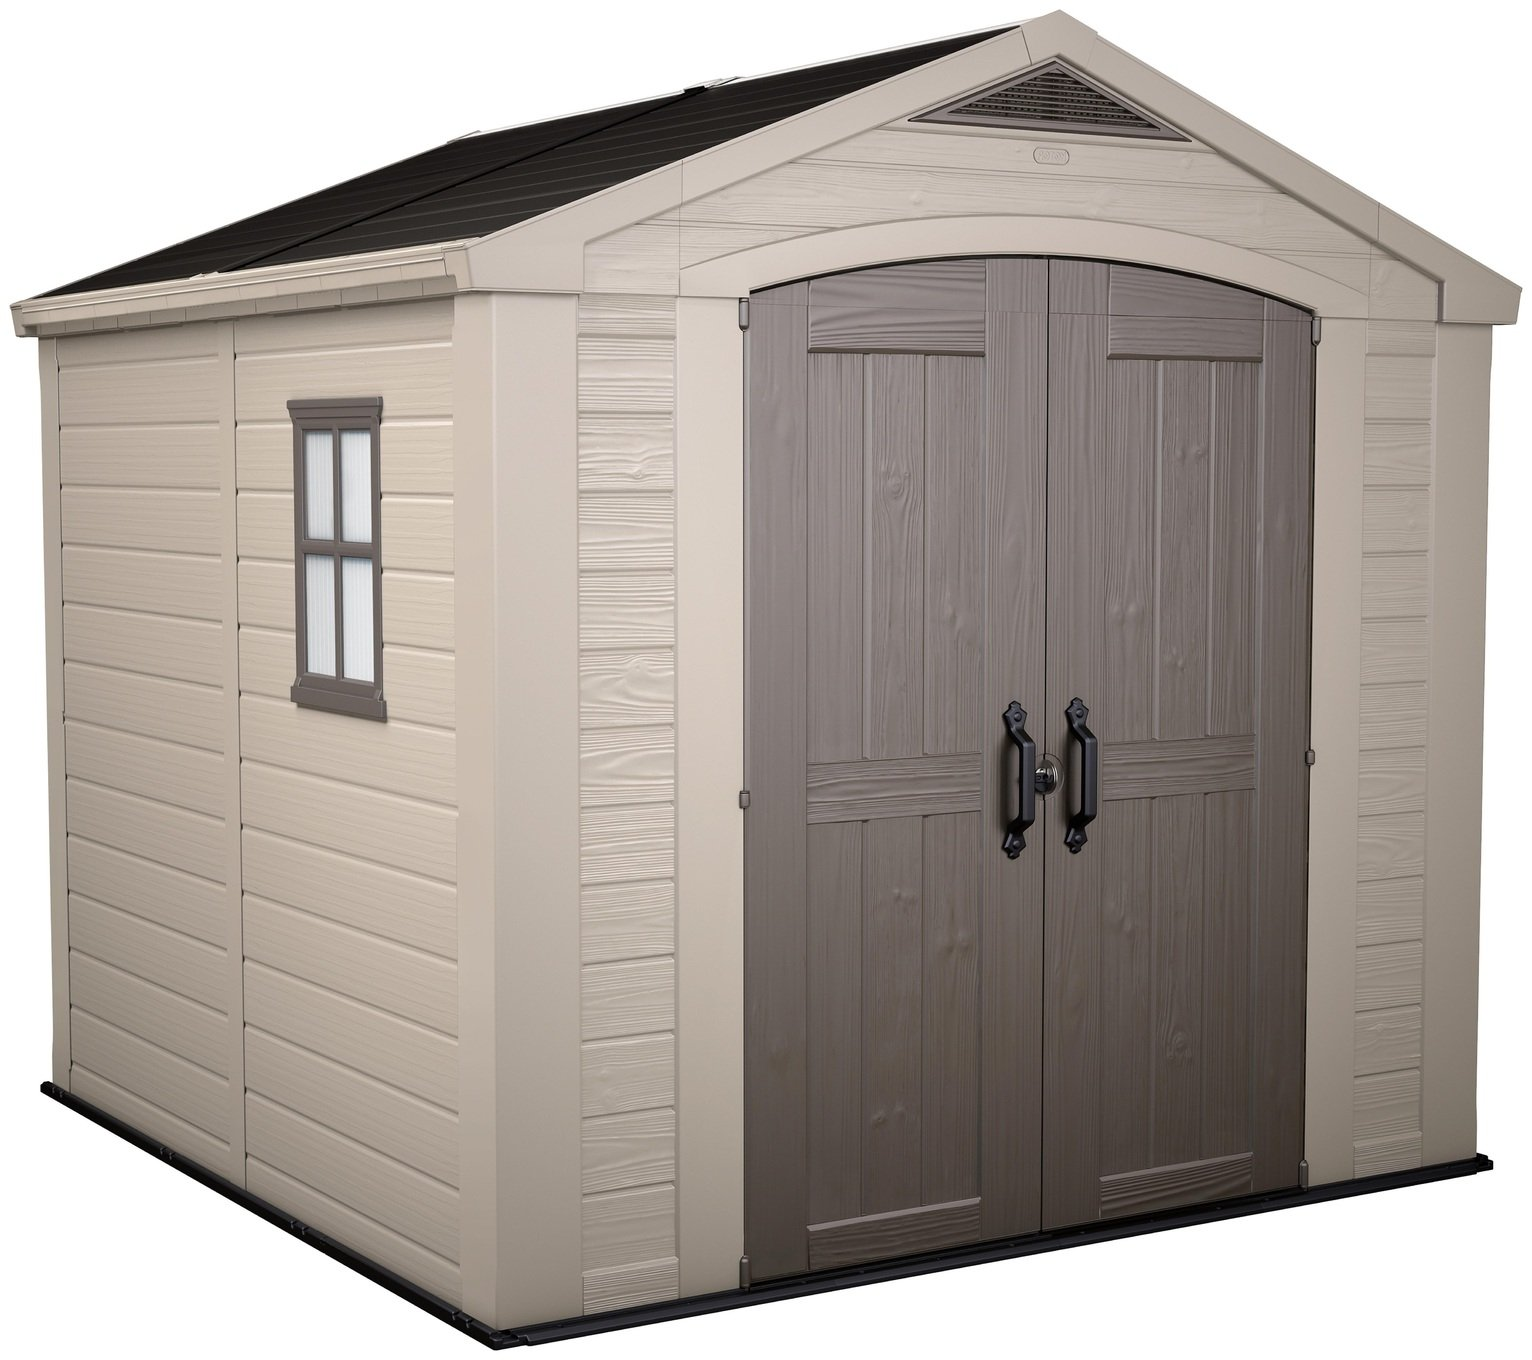 Keter Factor Apex Garden Storage Shed 8 x 8ft - Beige/Brown